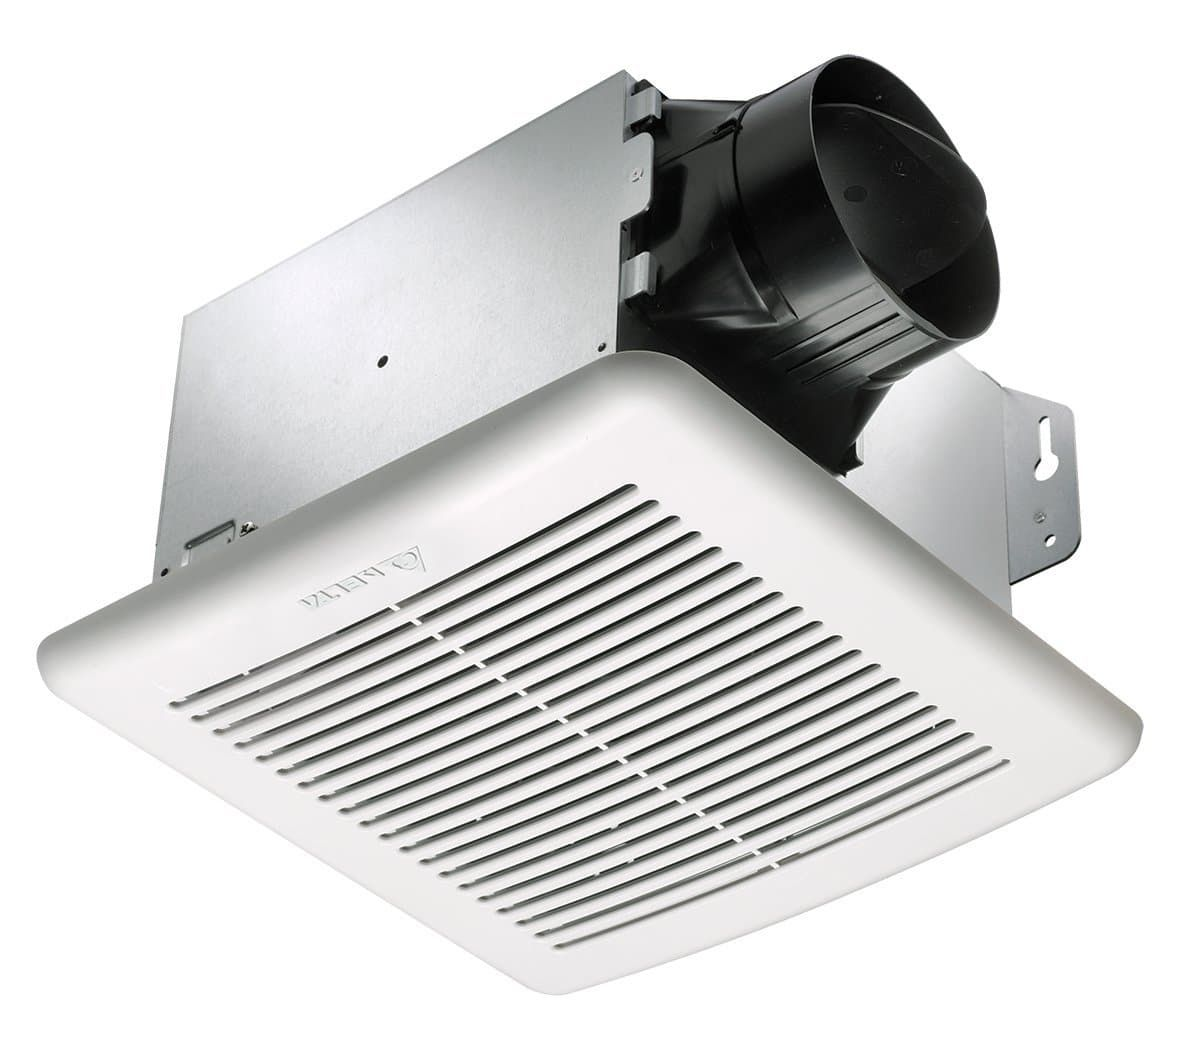 Top 10 Best Bathroom Exhaust Fans In 2020 Purchasing Guide Keep Your Bathroom Hygiene Bath Fan Bathroom Exhaust Fan Bathroom Fan